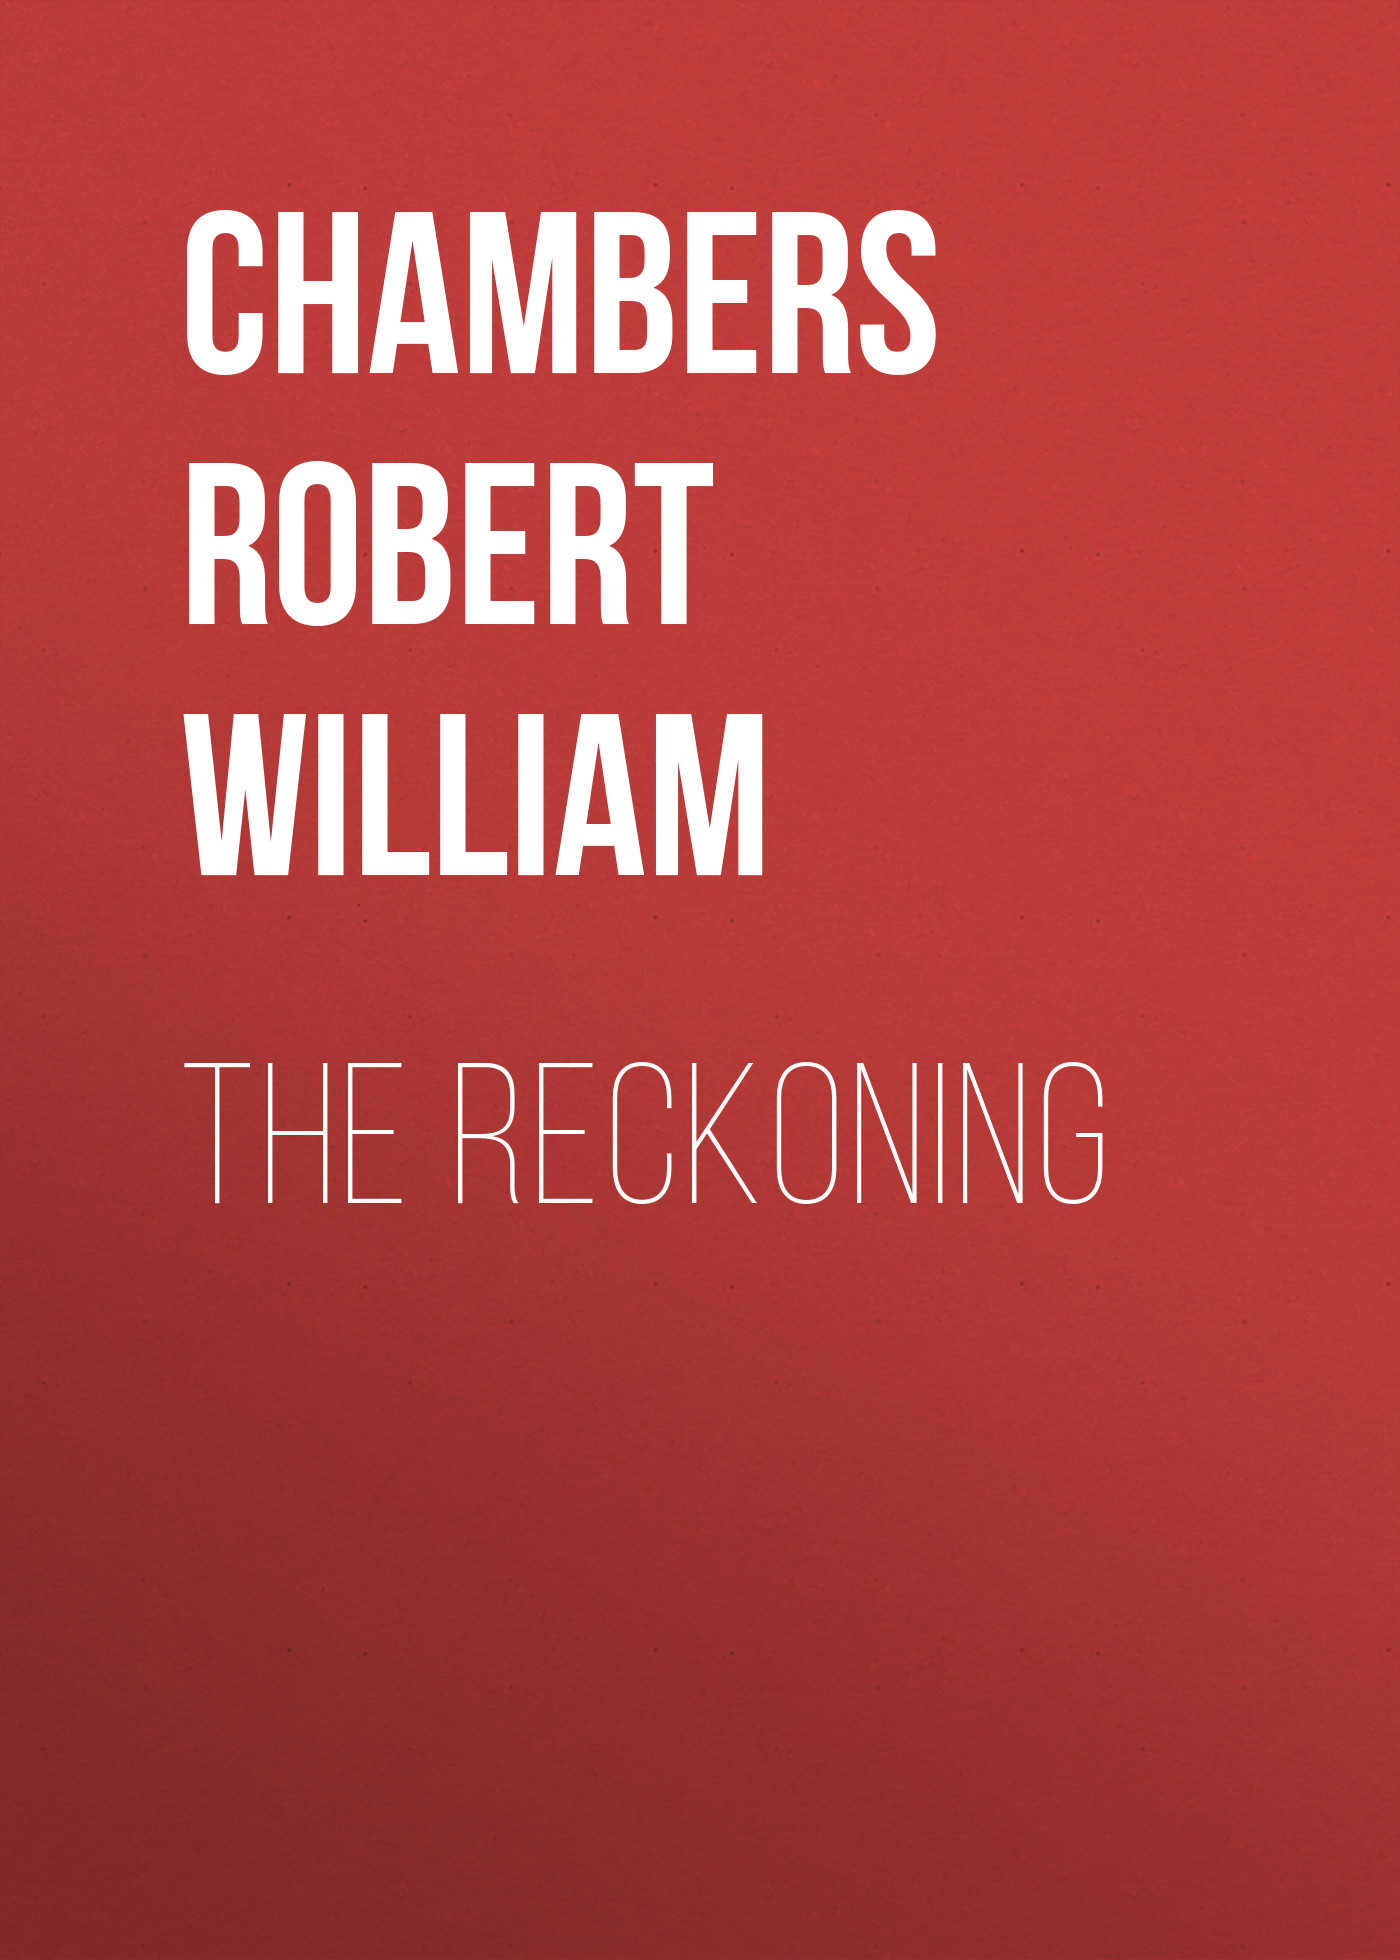 купить Chambers Robert William The Reckoning в интернет-магазине